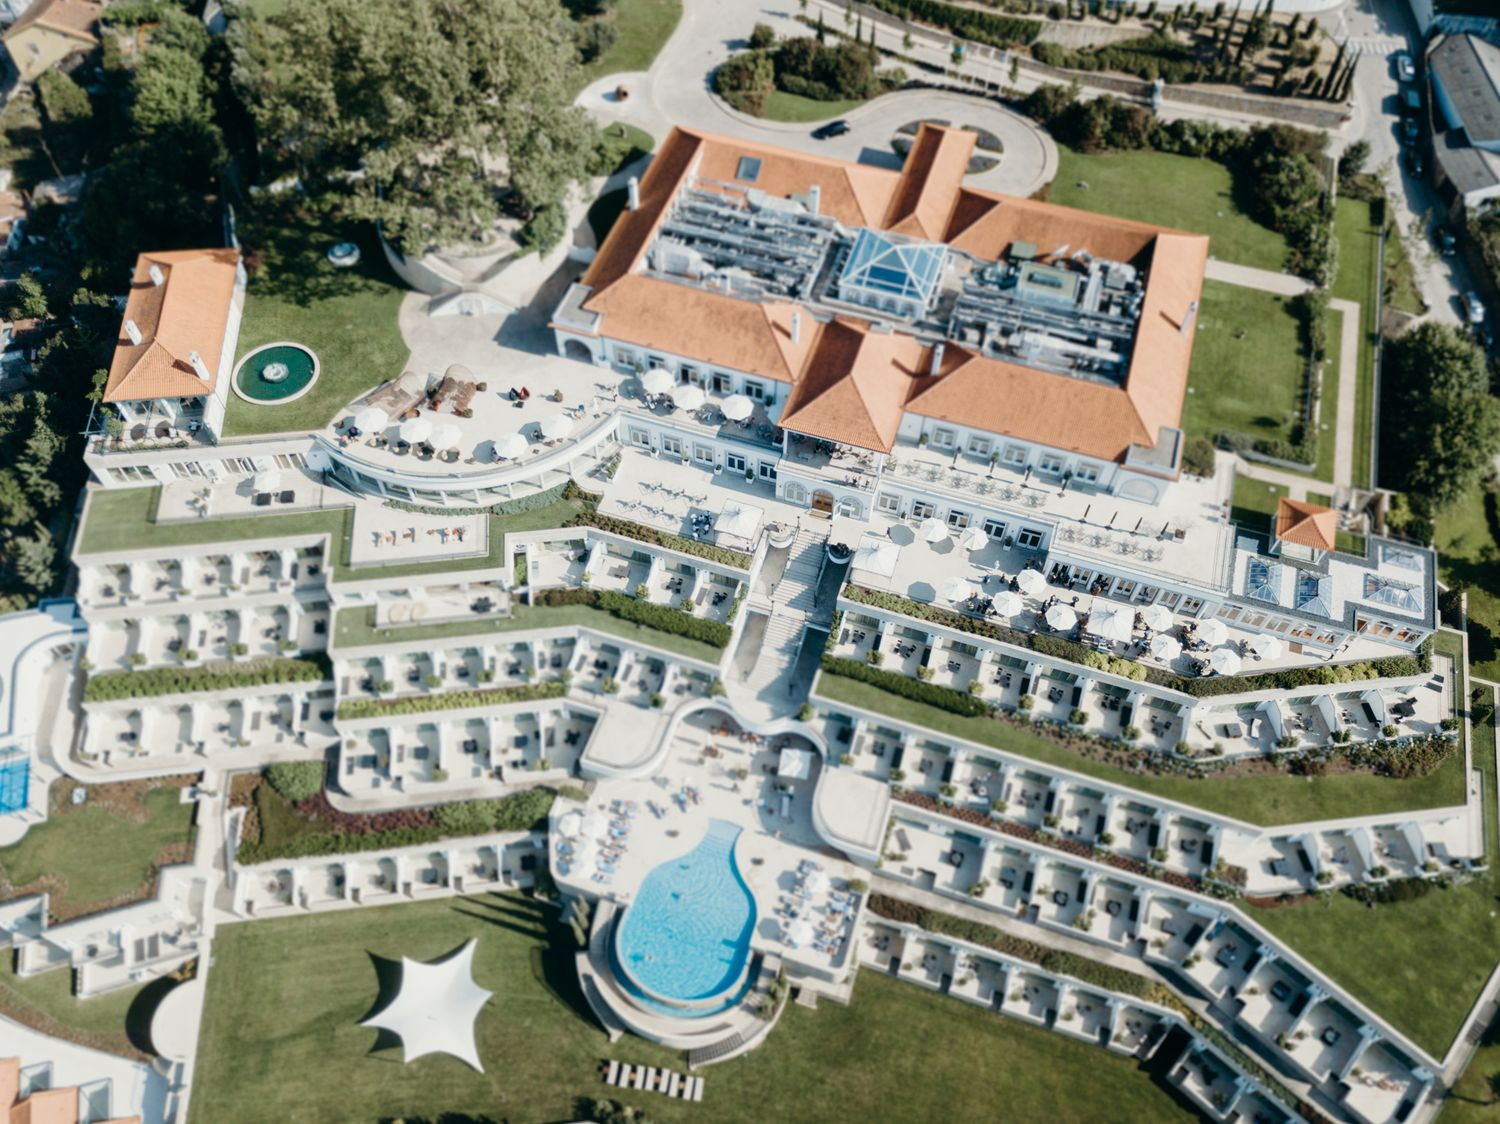 THE YEATMAN HOTEl drone WEDDING PHOTOGRAPHY